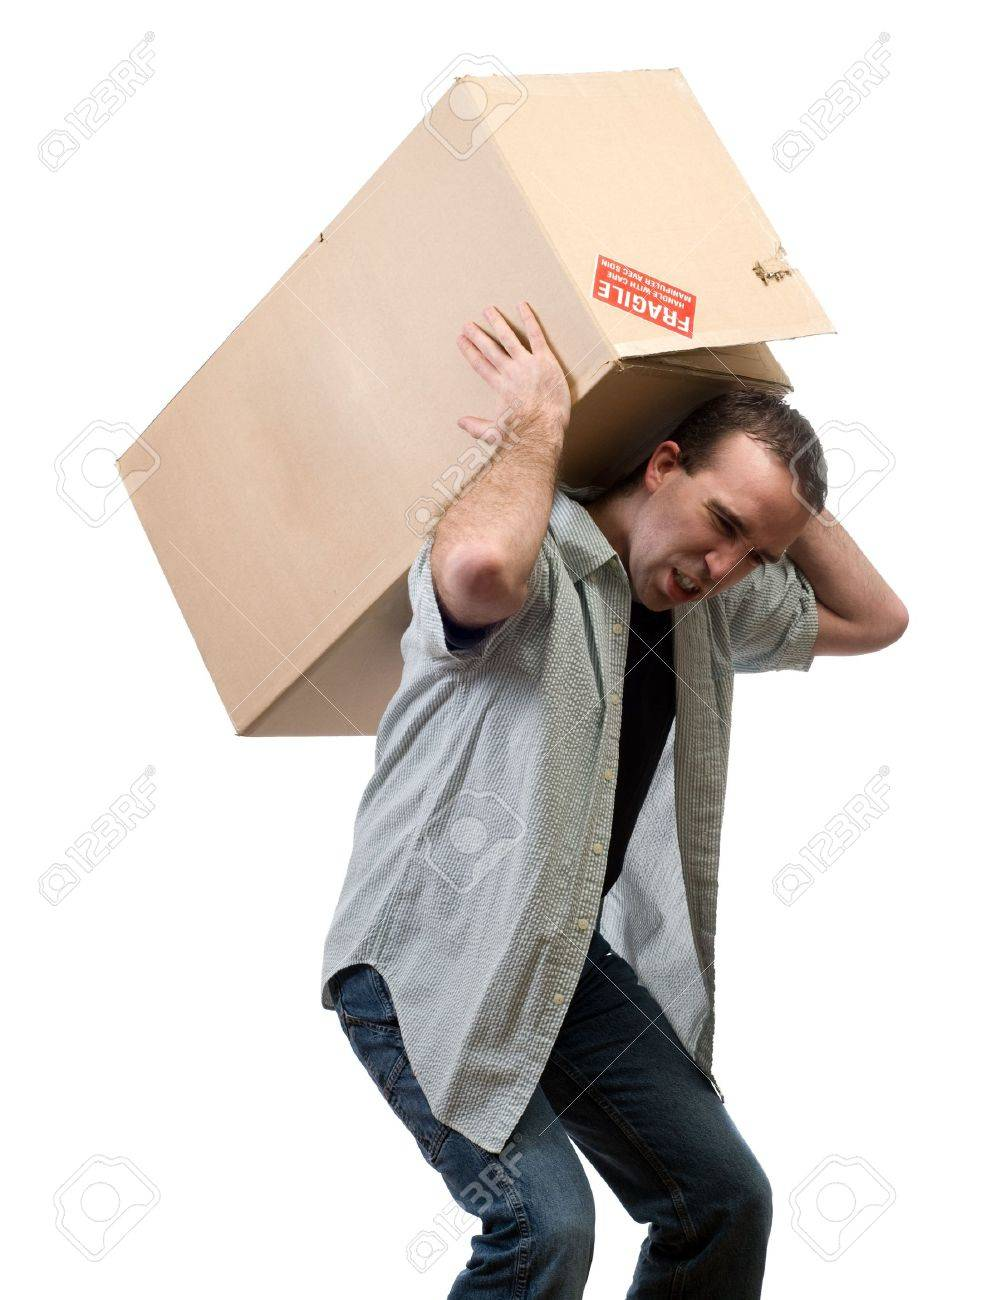 A young man lifting a larg heavy box, isolated against a white background Stock Photo - 4266987